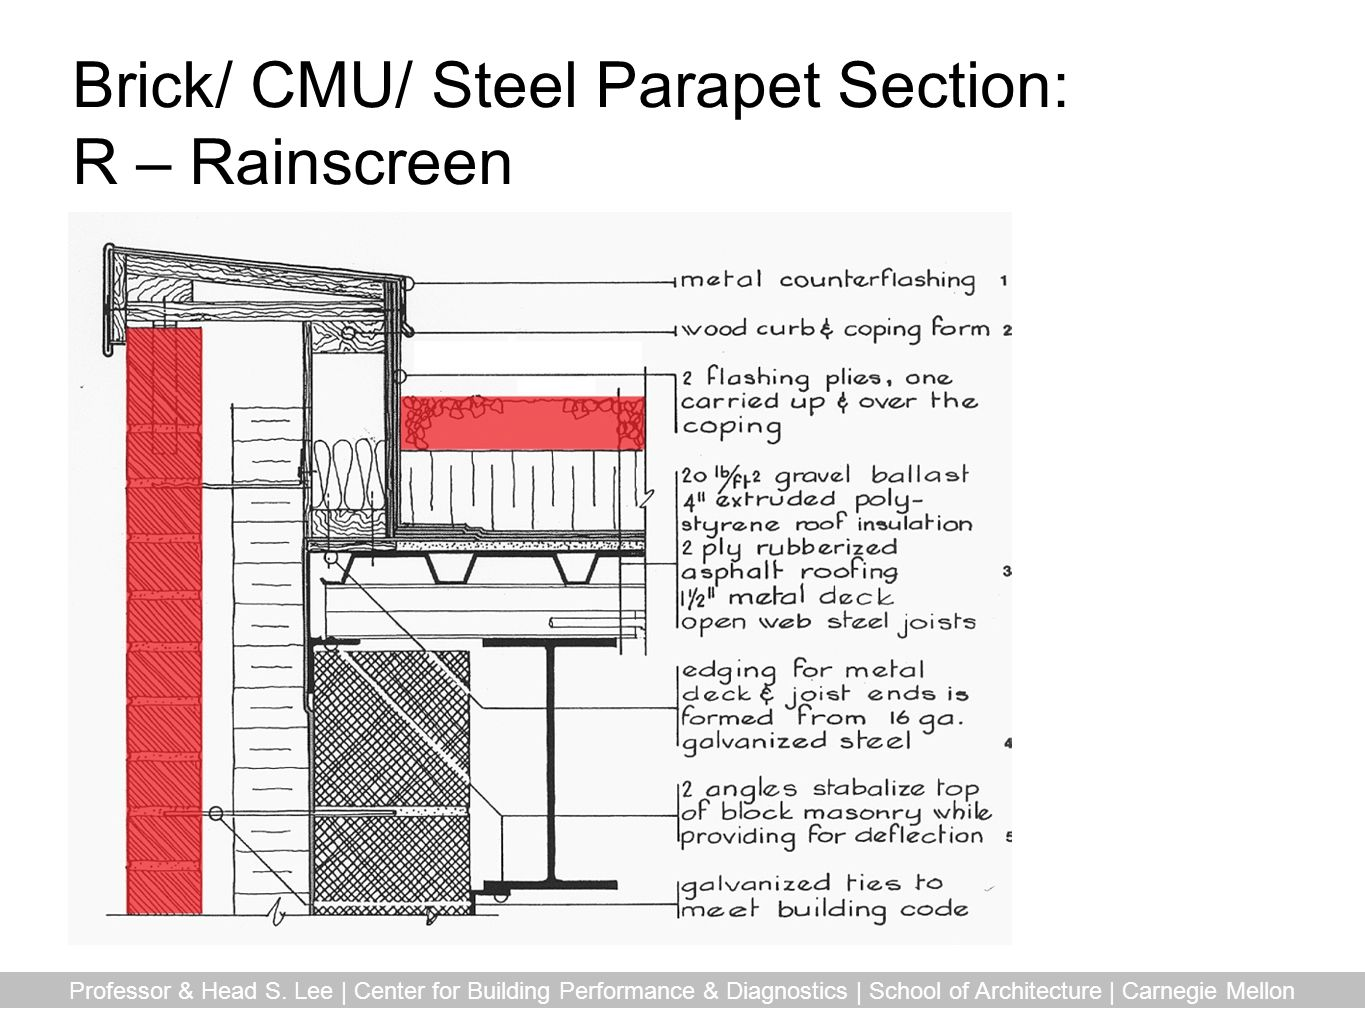 Brick/ CMU/ Steel Parapet Section: R – Rainscreen